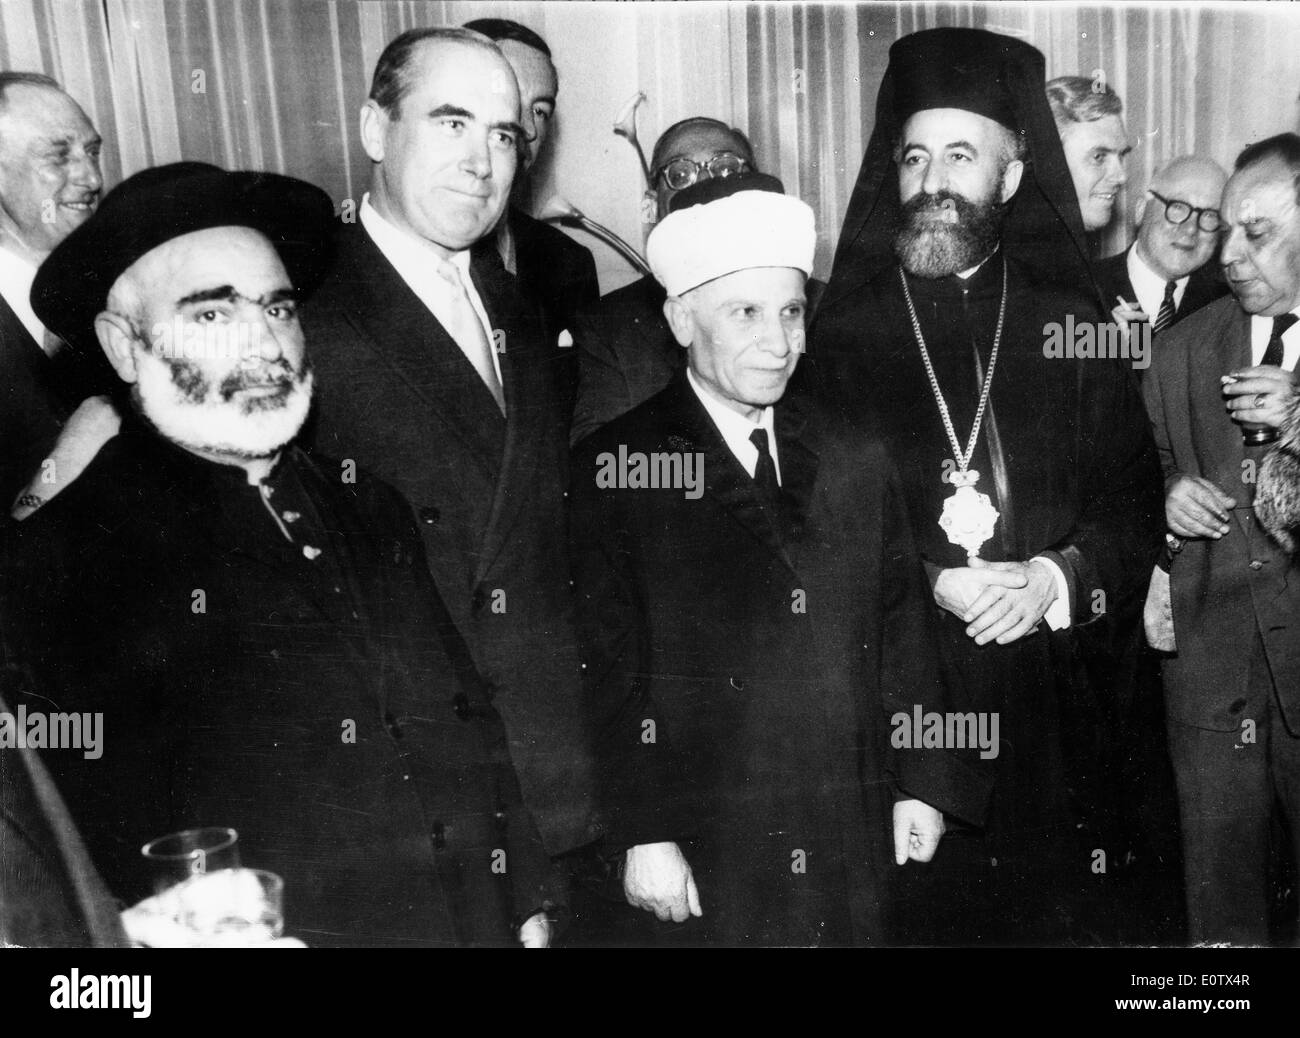 Archbishop Makarios III and Hugh Foot attend reception - Stock Image